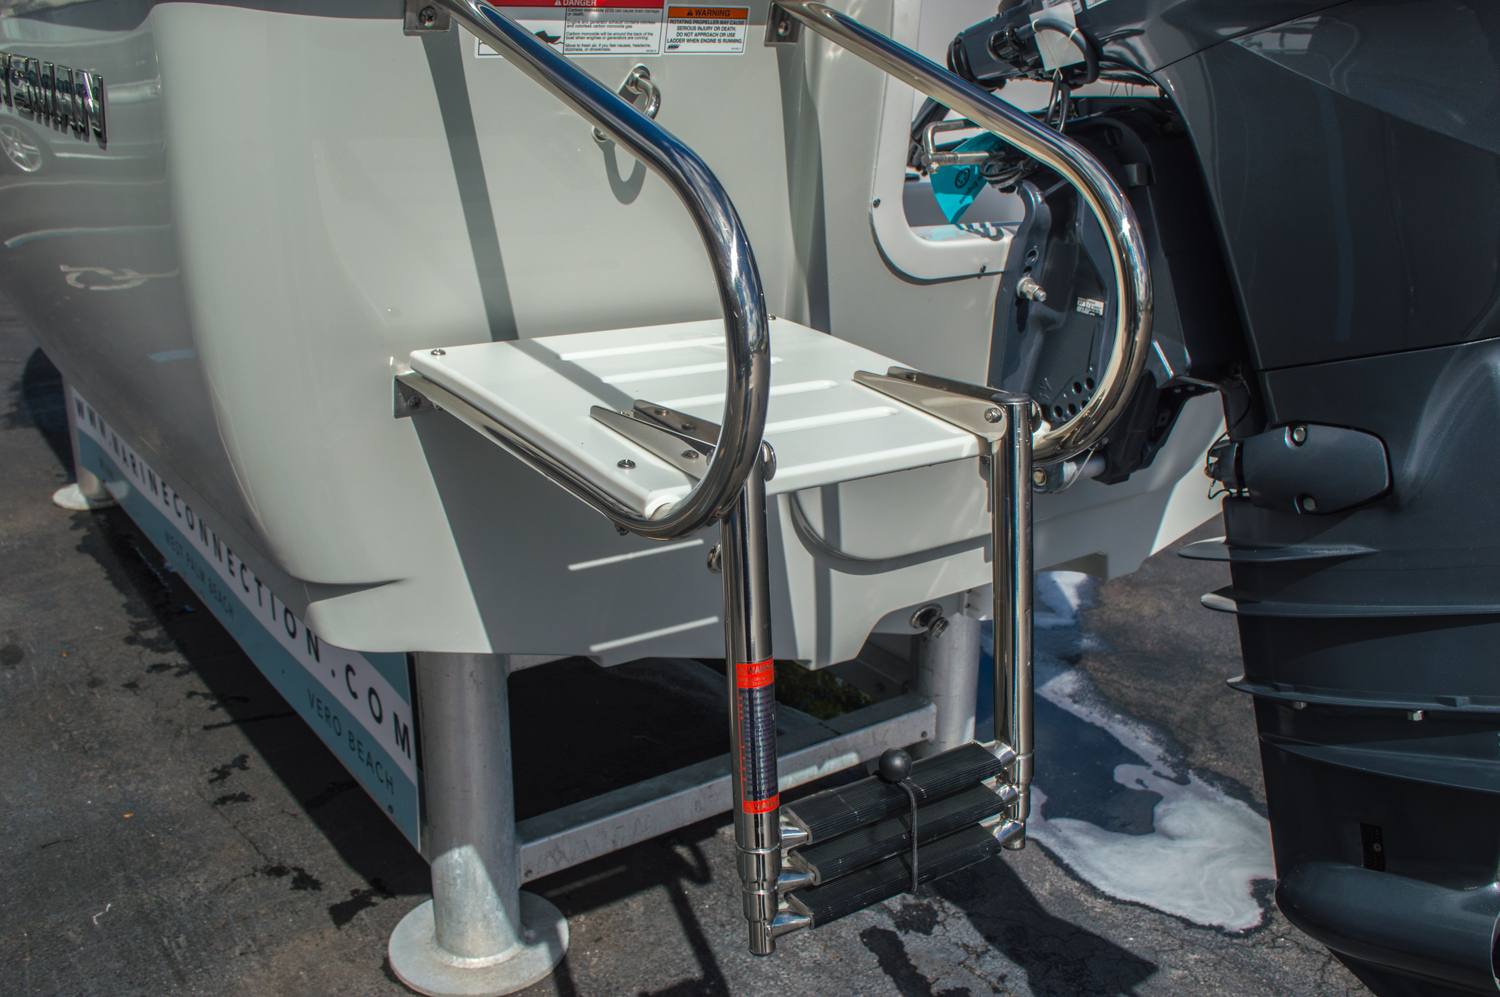 Thumbnail 13 for New 2016 Sportsman 19 Island Reef boat for sale in West Palm Beach, FL